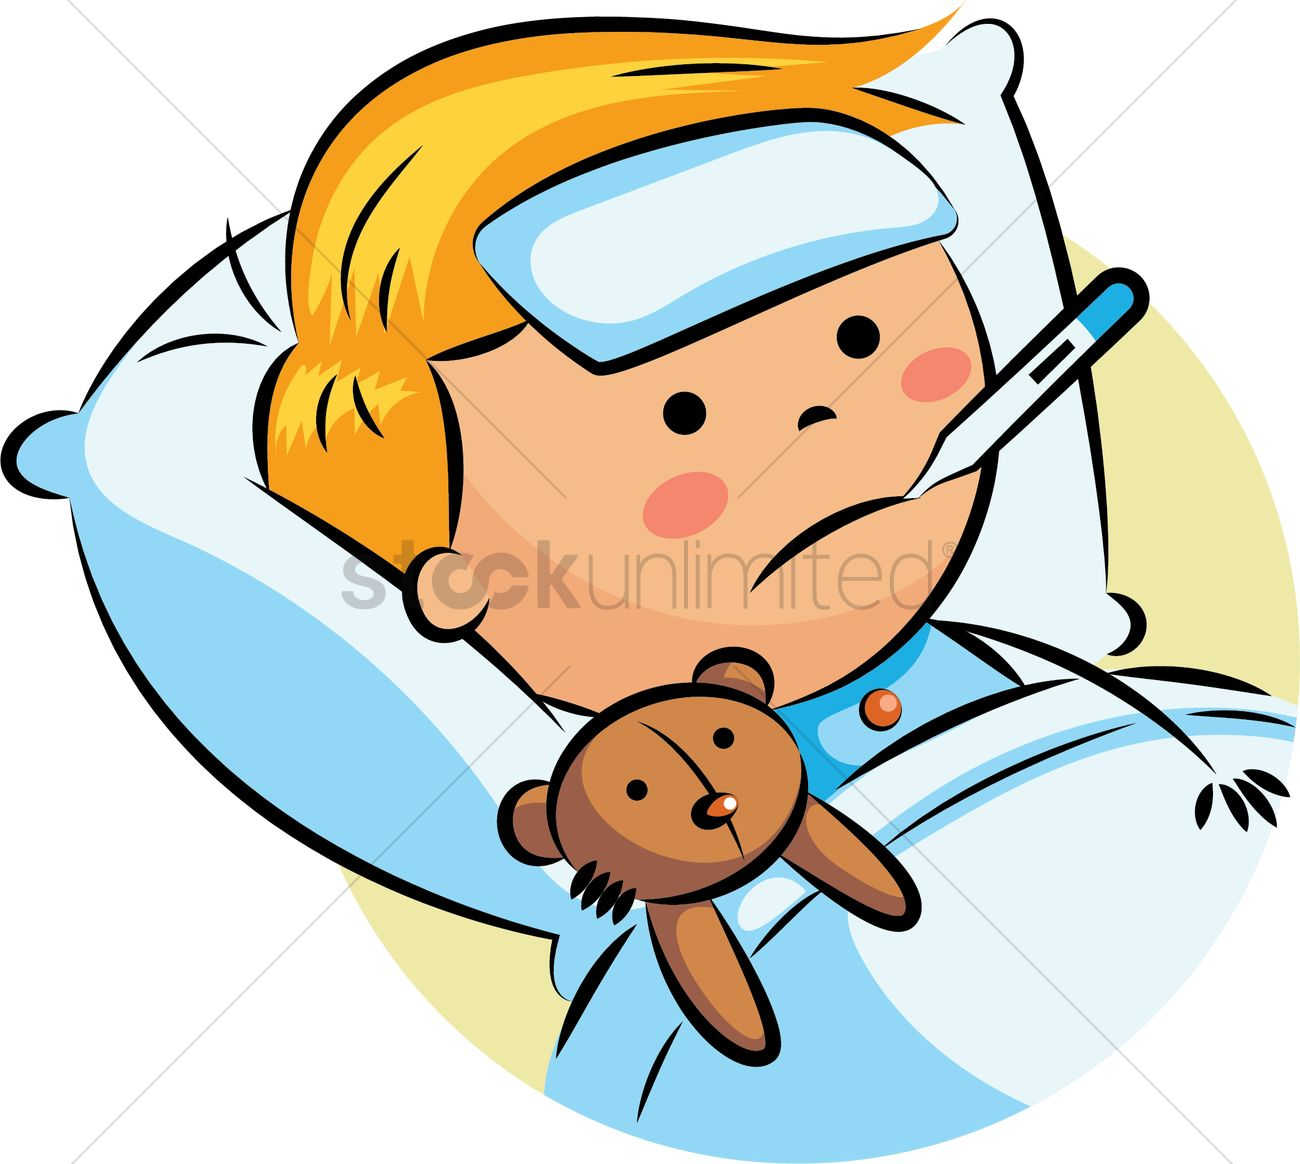 Boy with fever Vector Image - ...